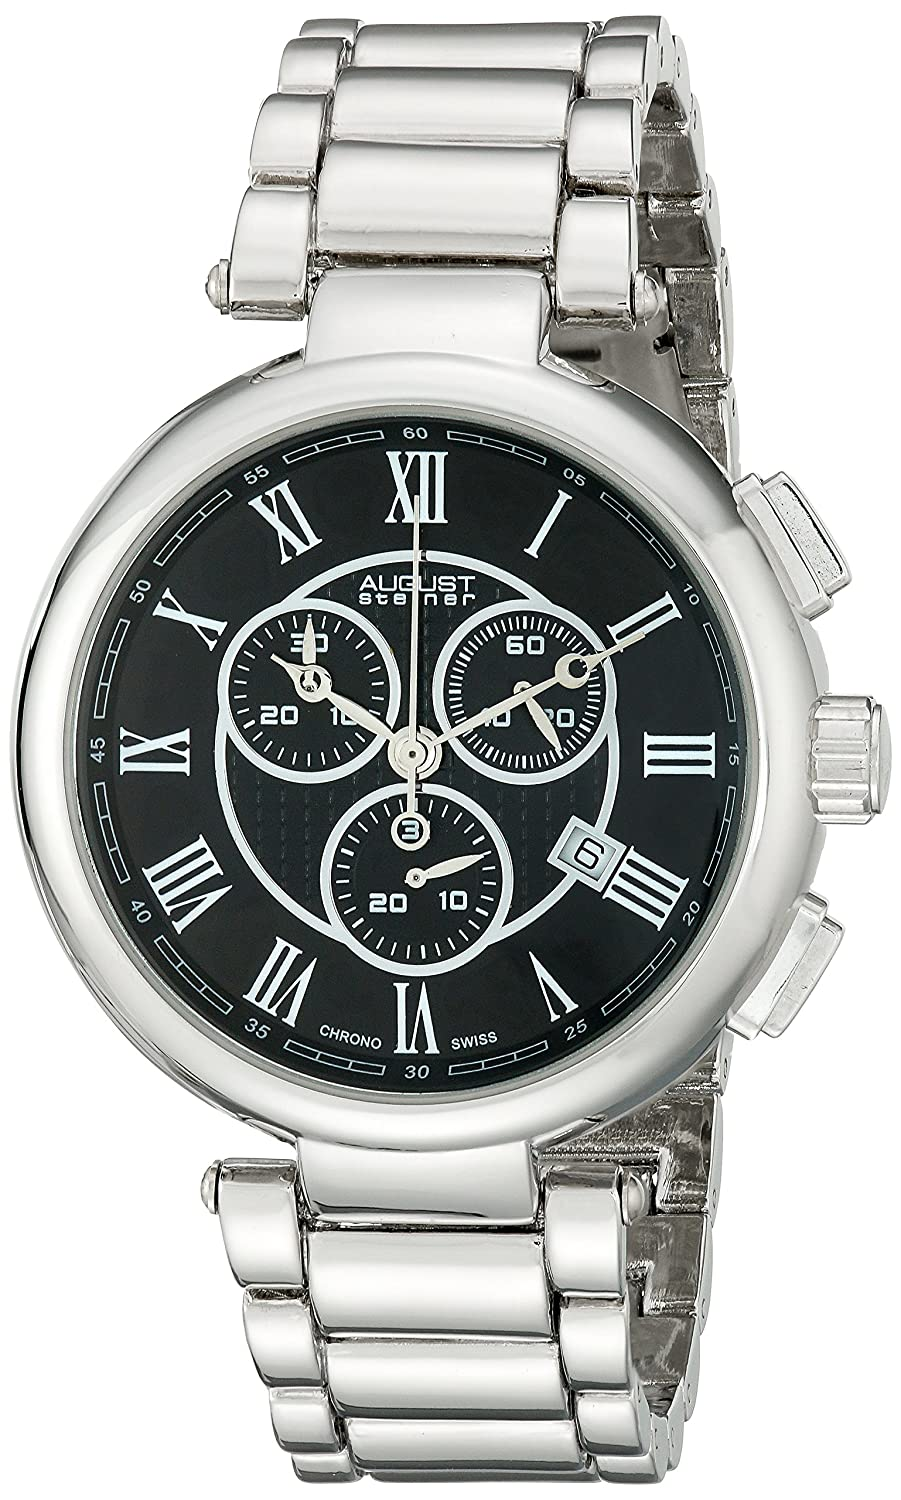 Amazon.com: August Steiner Mens AS8148SSB Silver Swiss Chronograph Quartz Watch with Black Dial and Silver Bracelet: Watches